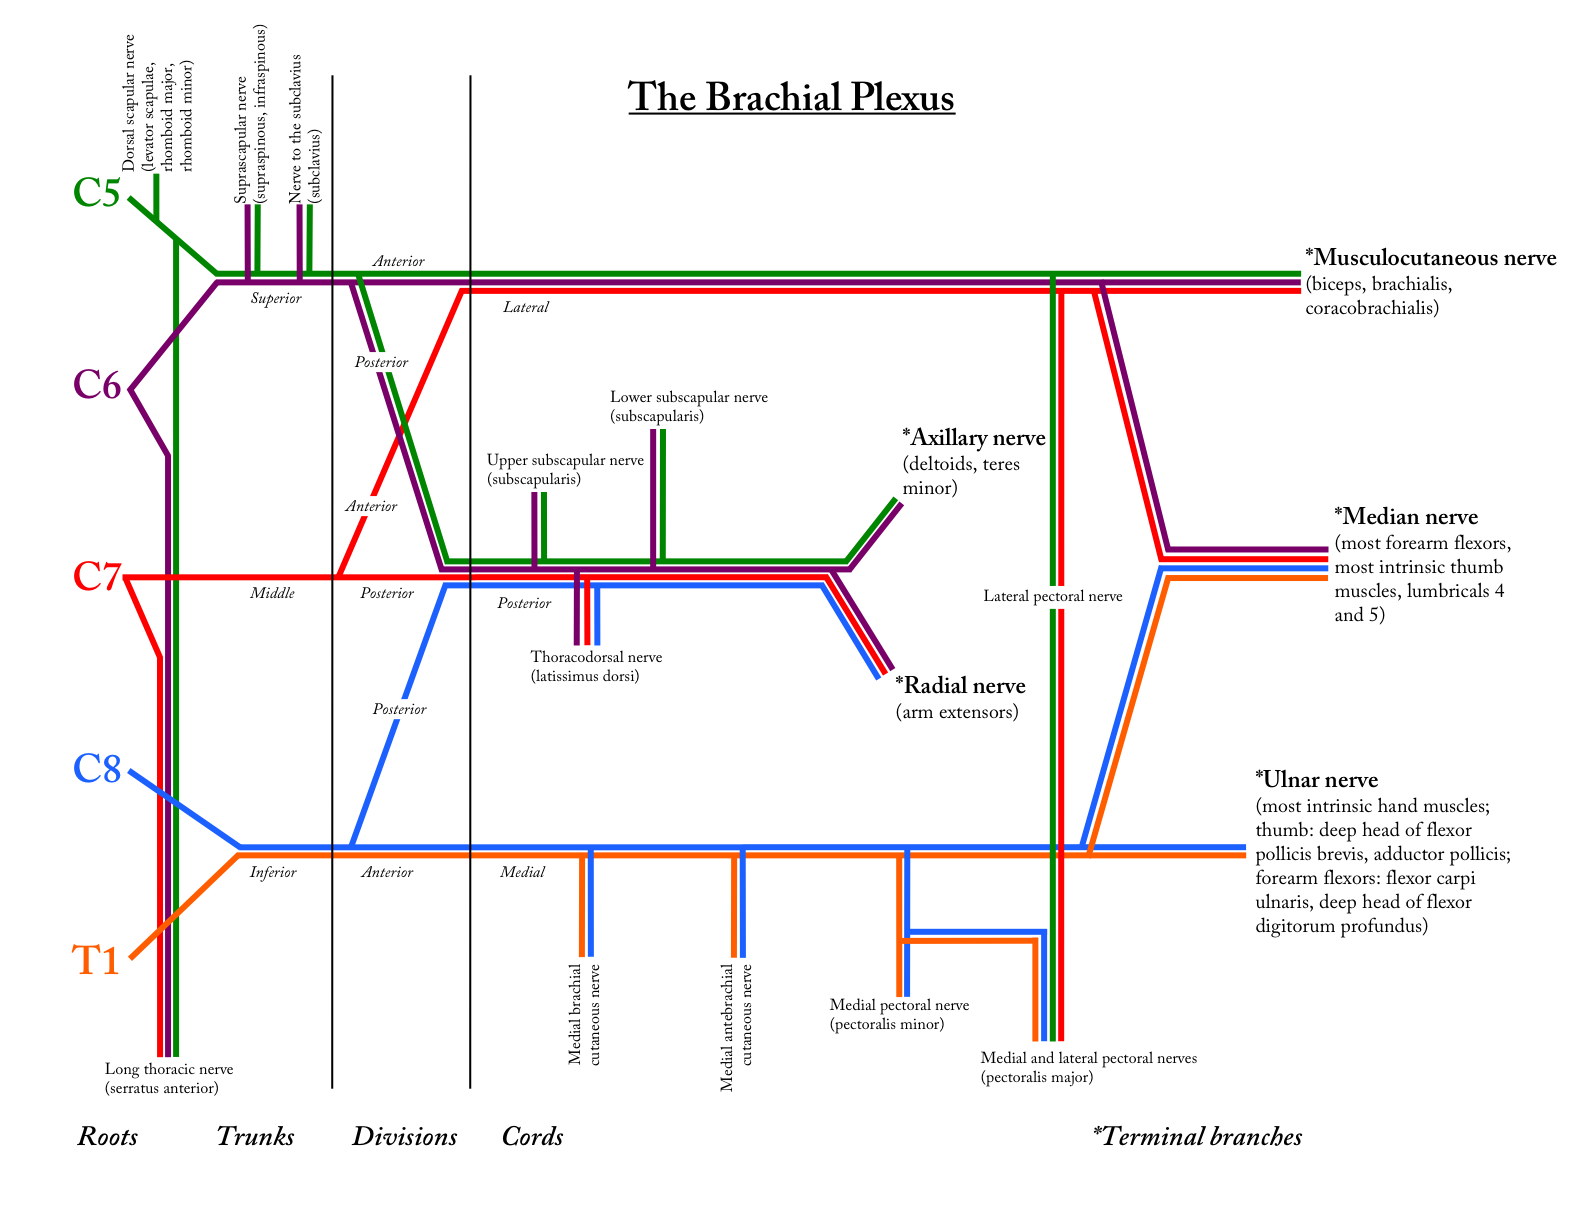 brachial plexus schematic - photo #5